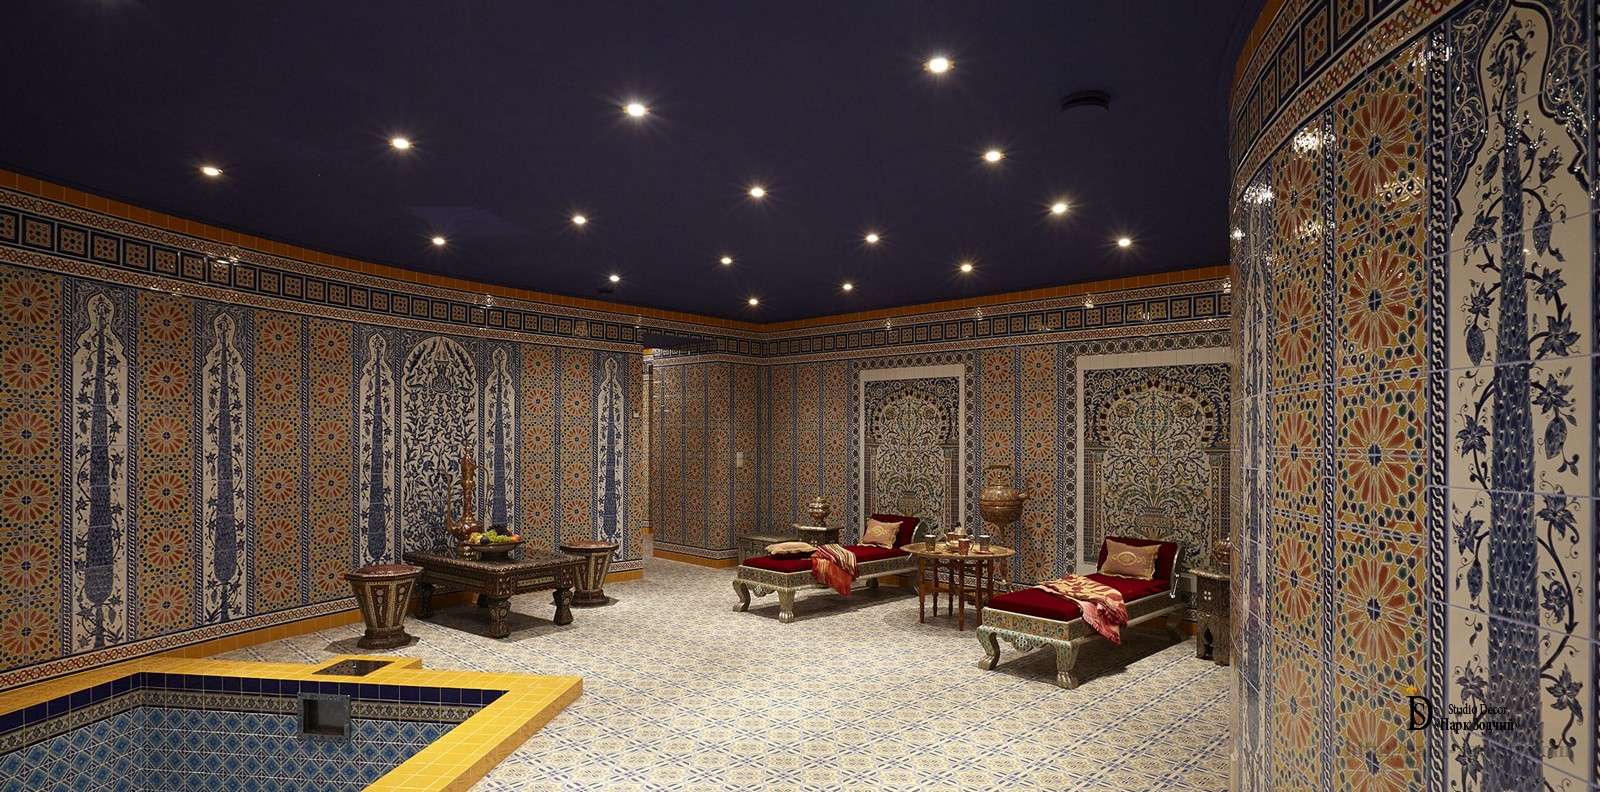 Richly decorated hammam interior